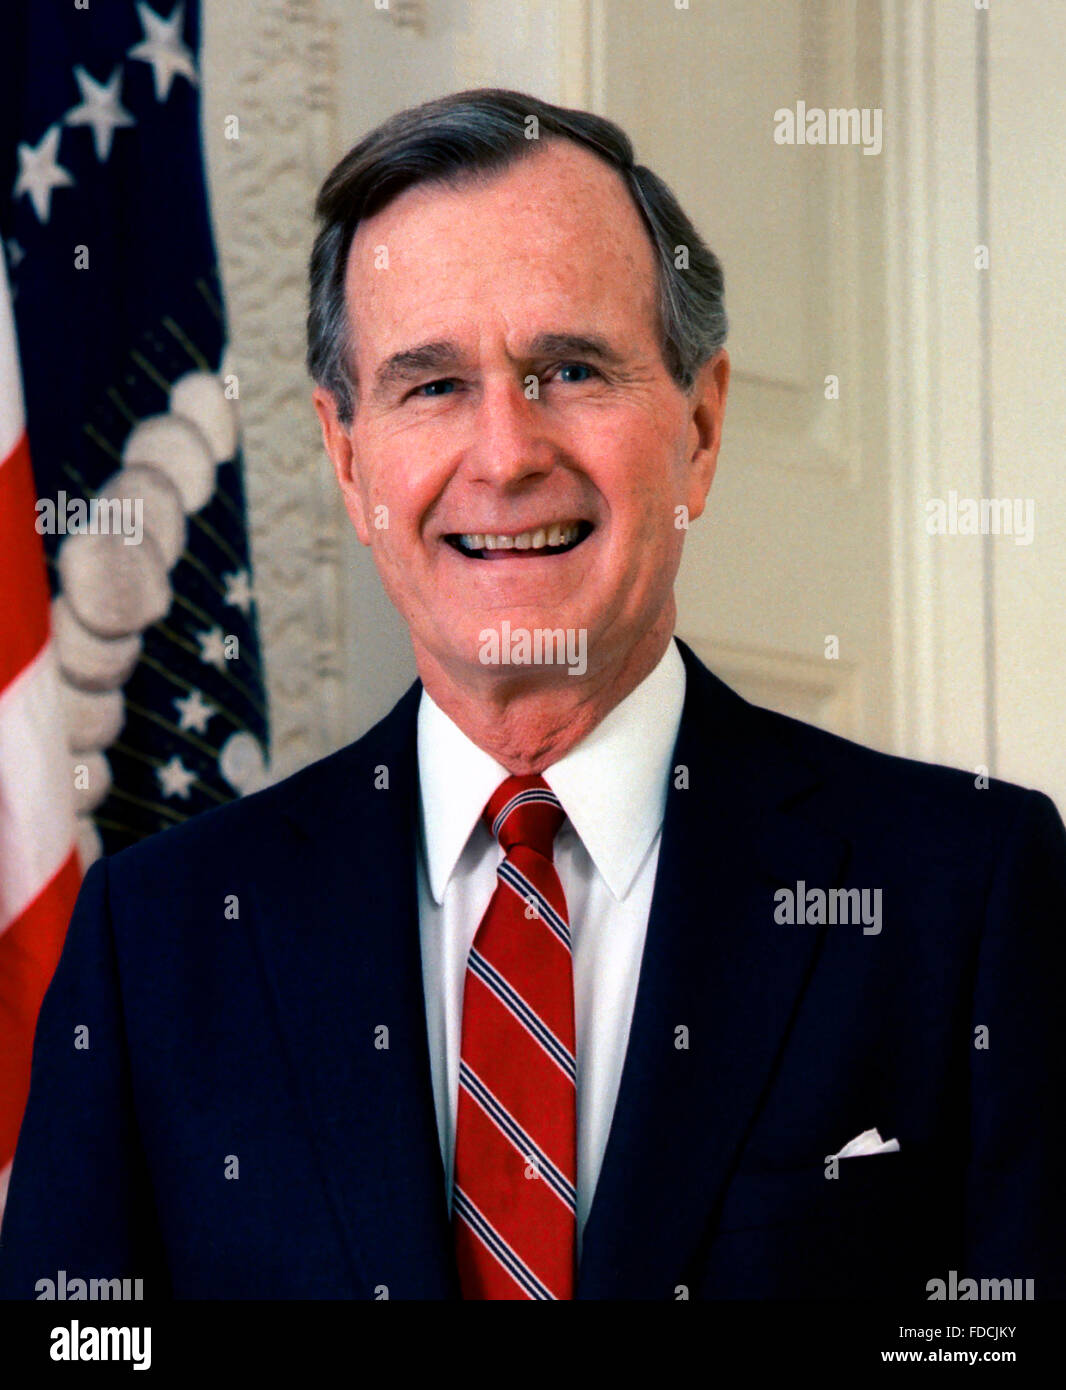 Official White House photo of George H W Bush, 41st  President of the USA, c.1989 - Stock Image